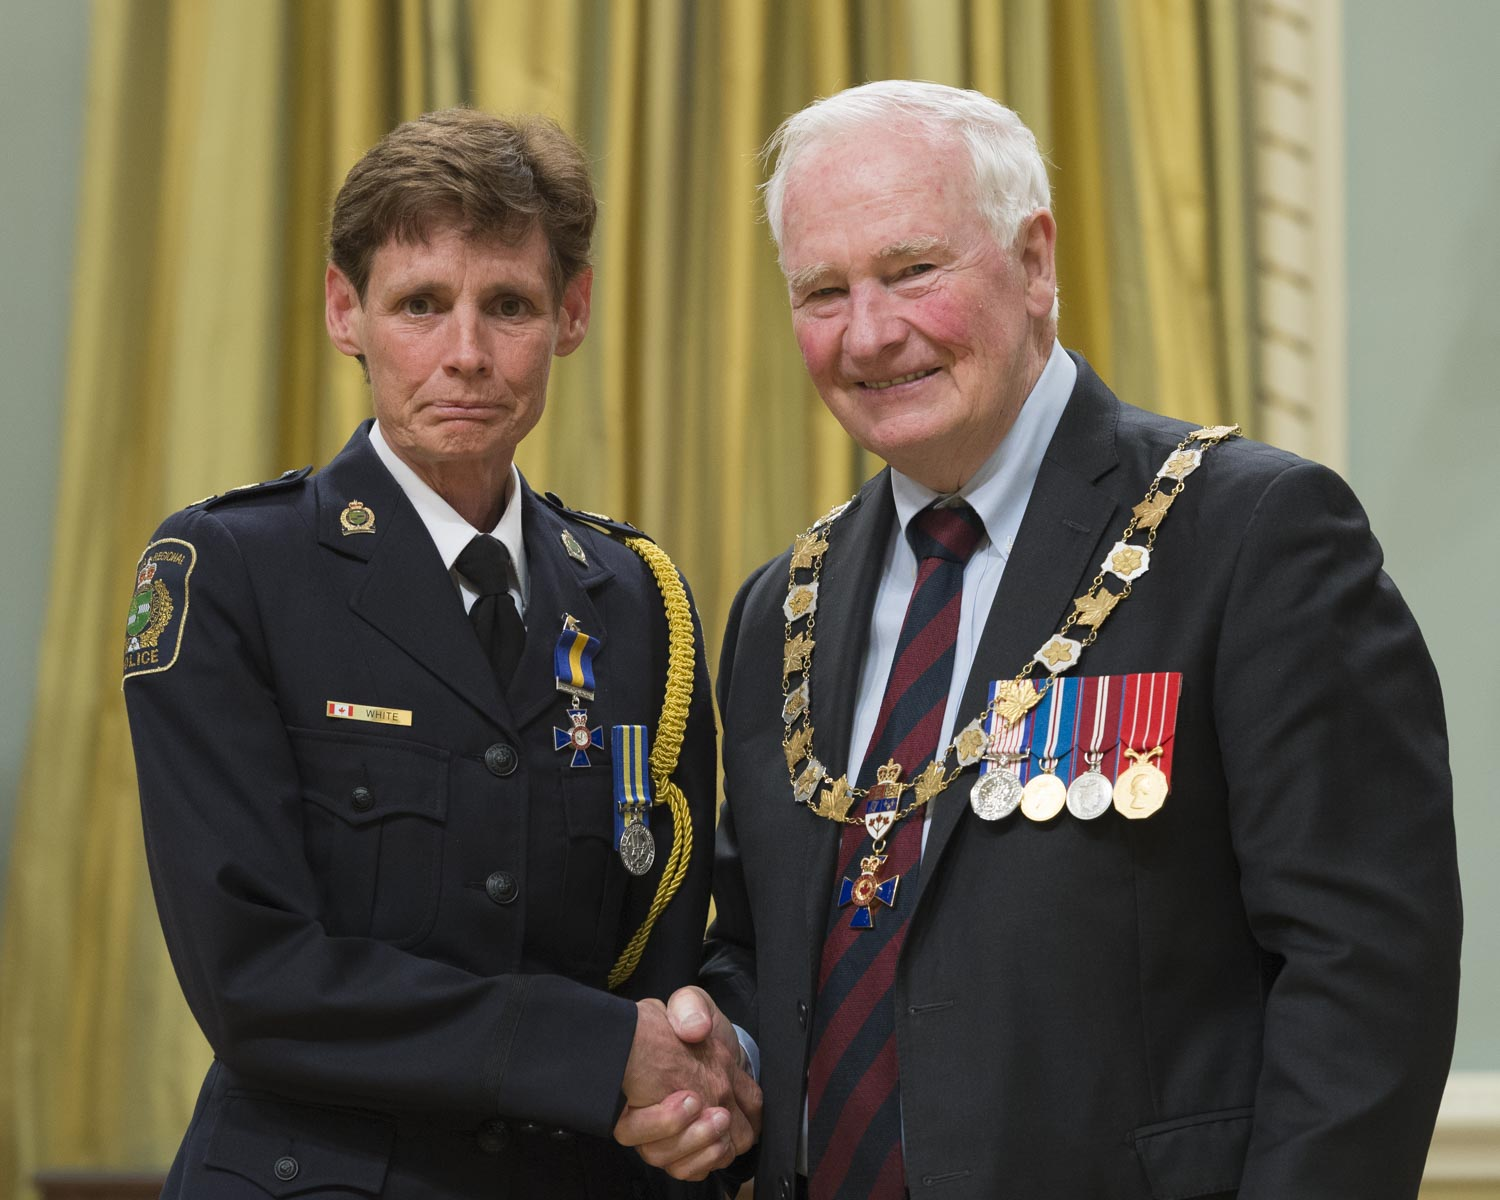 His Excellency presented the Order at the Member level to Inspector Cindy Joyce White, M.O.M., of the Niagara Regional Police Service, St. Catharines, Ontario.